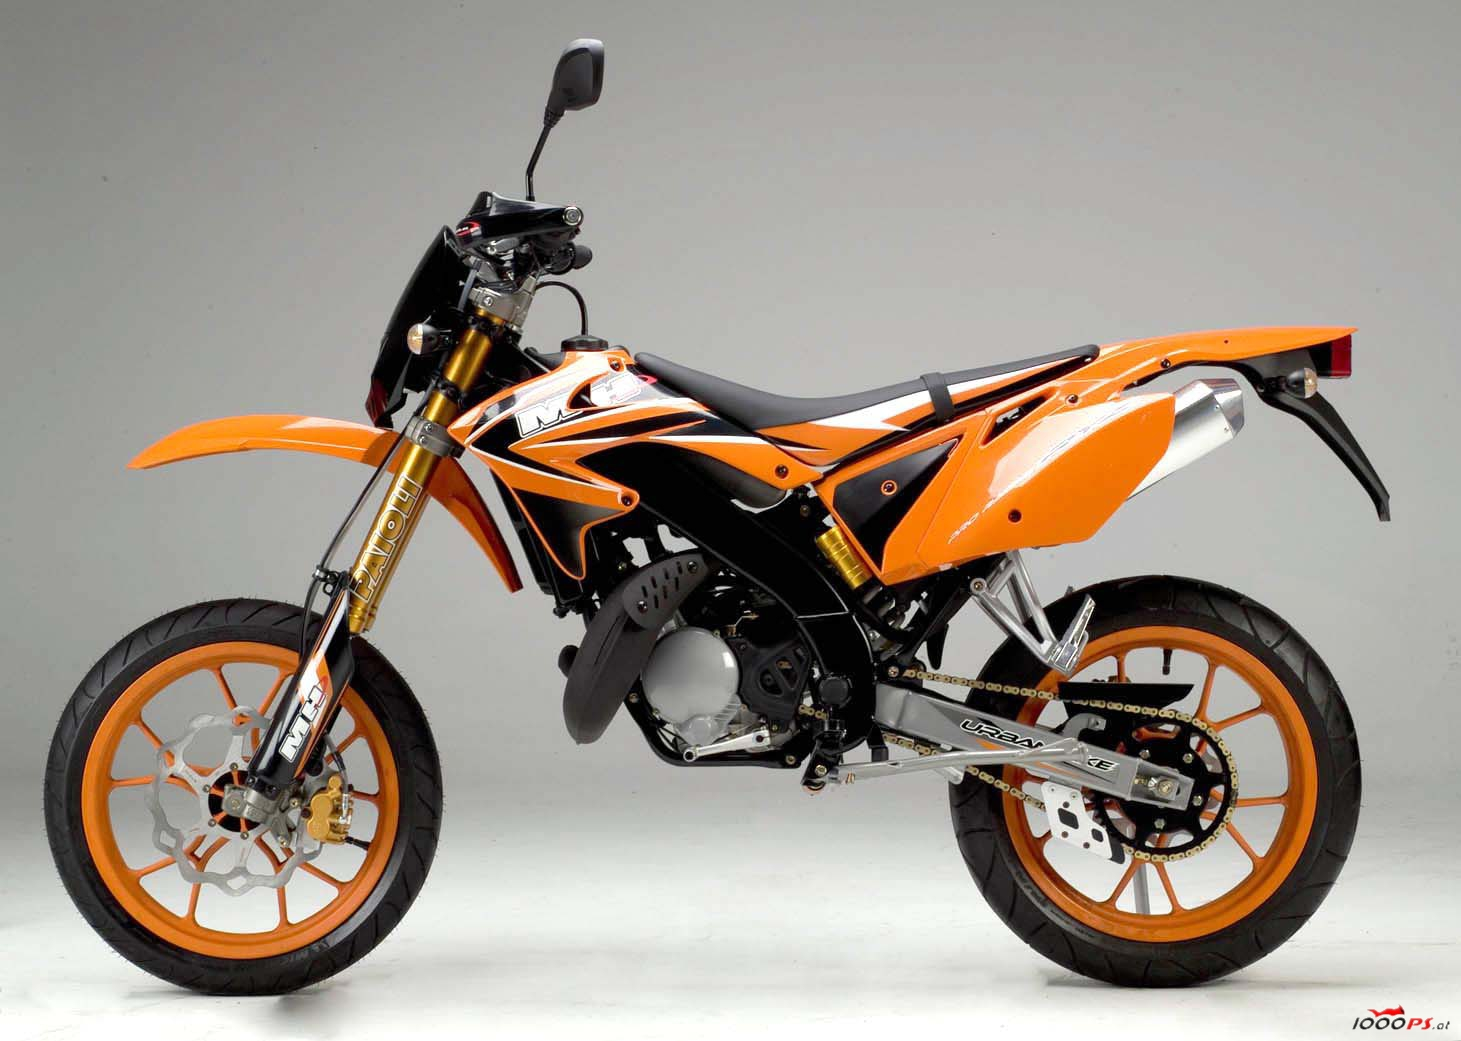 Motorhispania RYZ 49 Supermotard images #112549